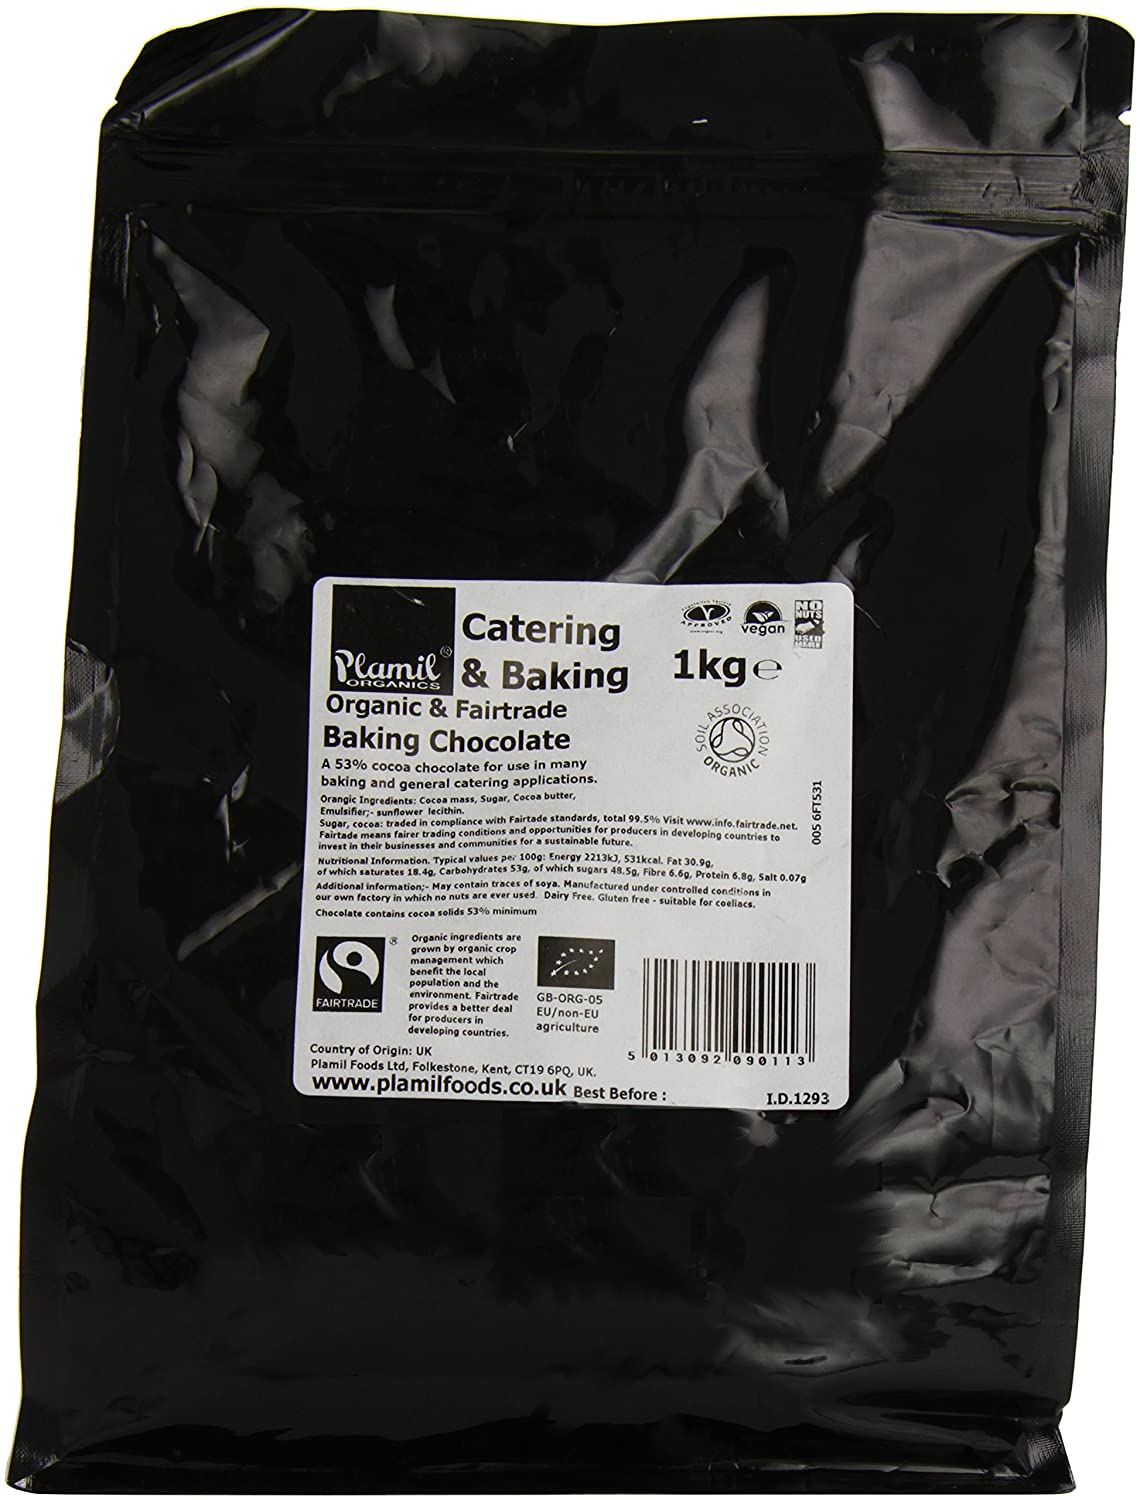 Plamil Organic and Fairtrade Baking Chocolate 1 kg (Pack of 1 ...